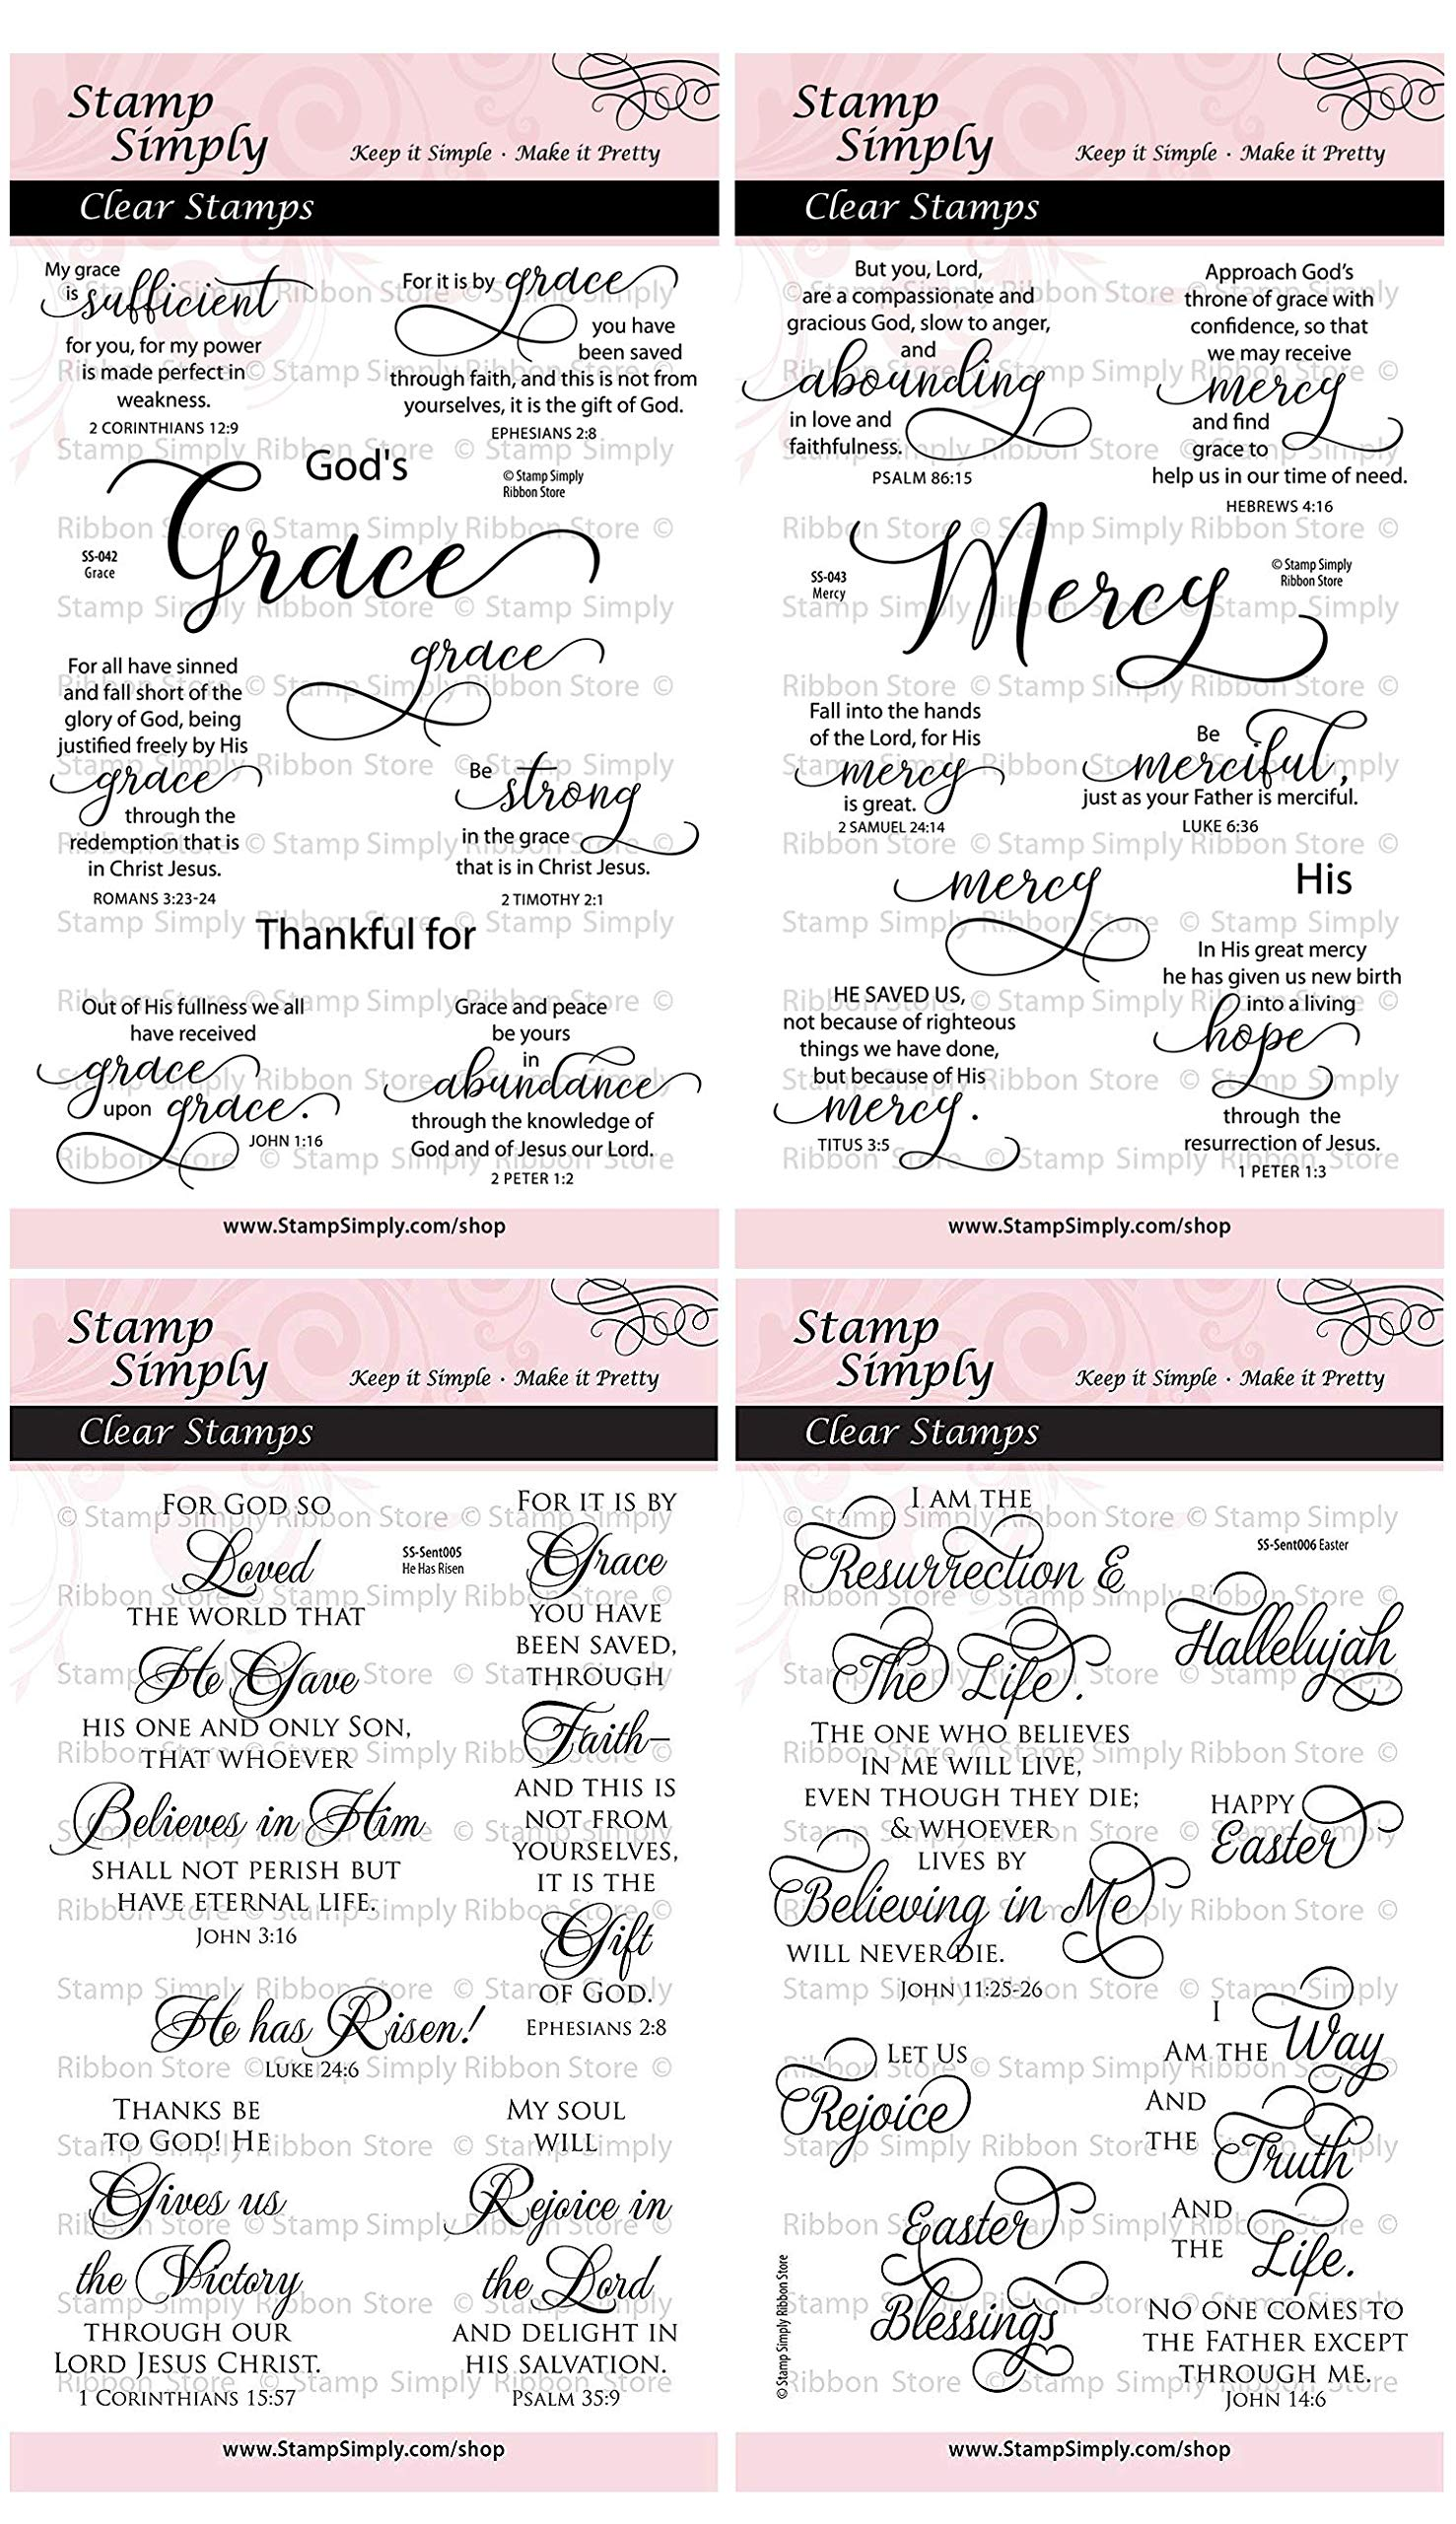 Stamp Simply Clear Stamps Grace Mercy He Has Risen and Easter Christian Religious (4-Pack) 4x6 Inch Sheets - 30 Pieces